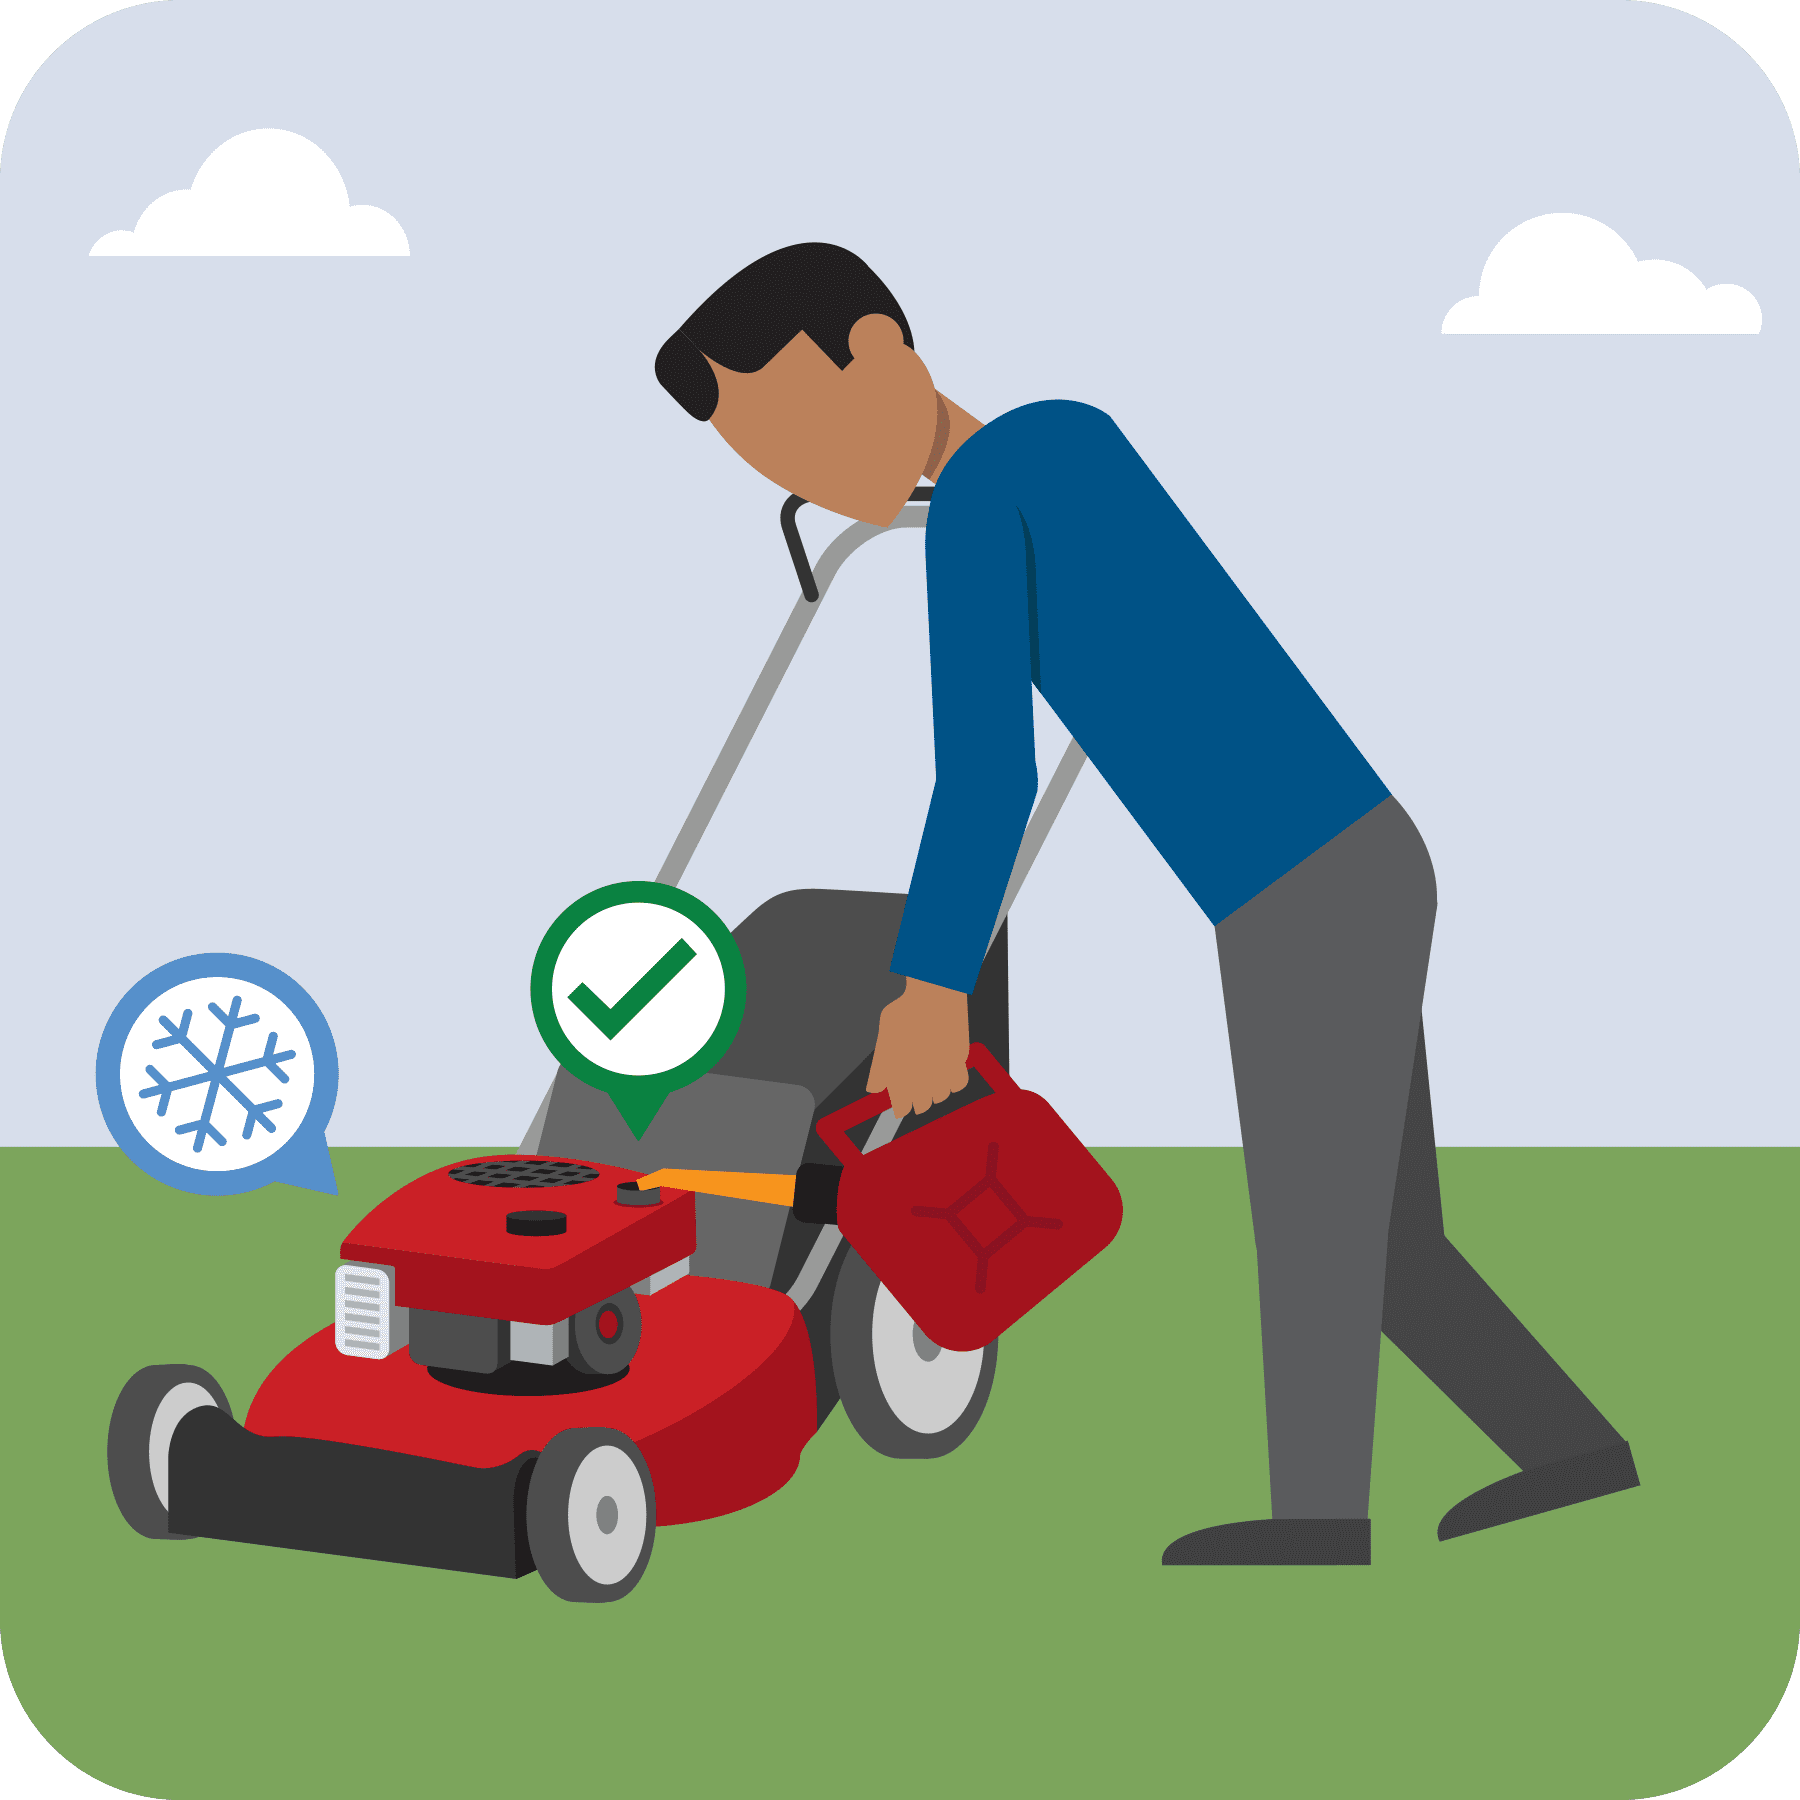 A man is fueling a cool lawnmower. A green checkmark is over the lawnmower.